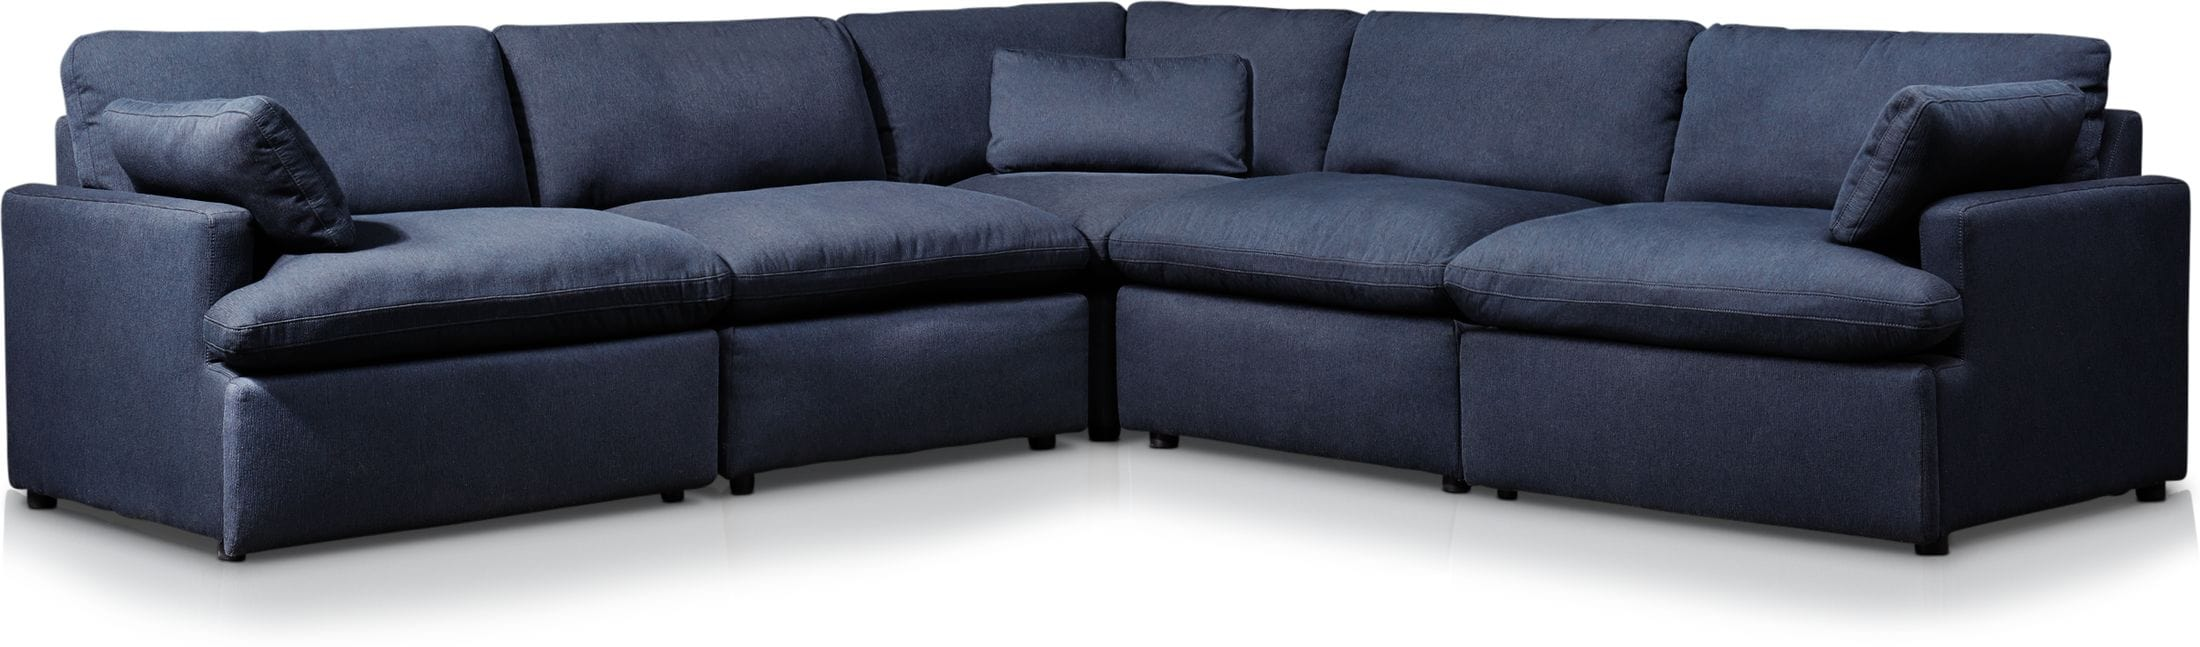 Living Room Furniture - Cozy 5-Piece Power Reclining Sectional with 1 Reclining Seat